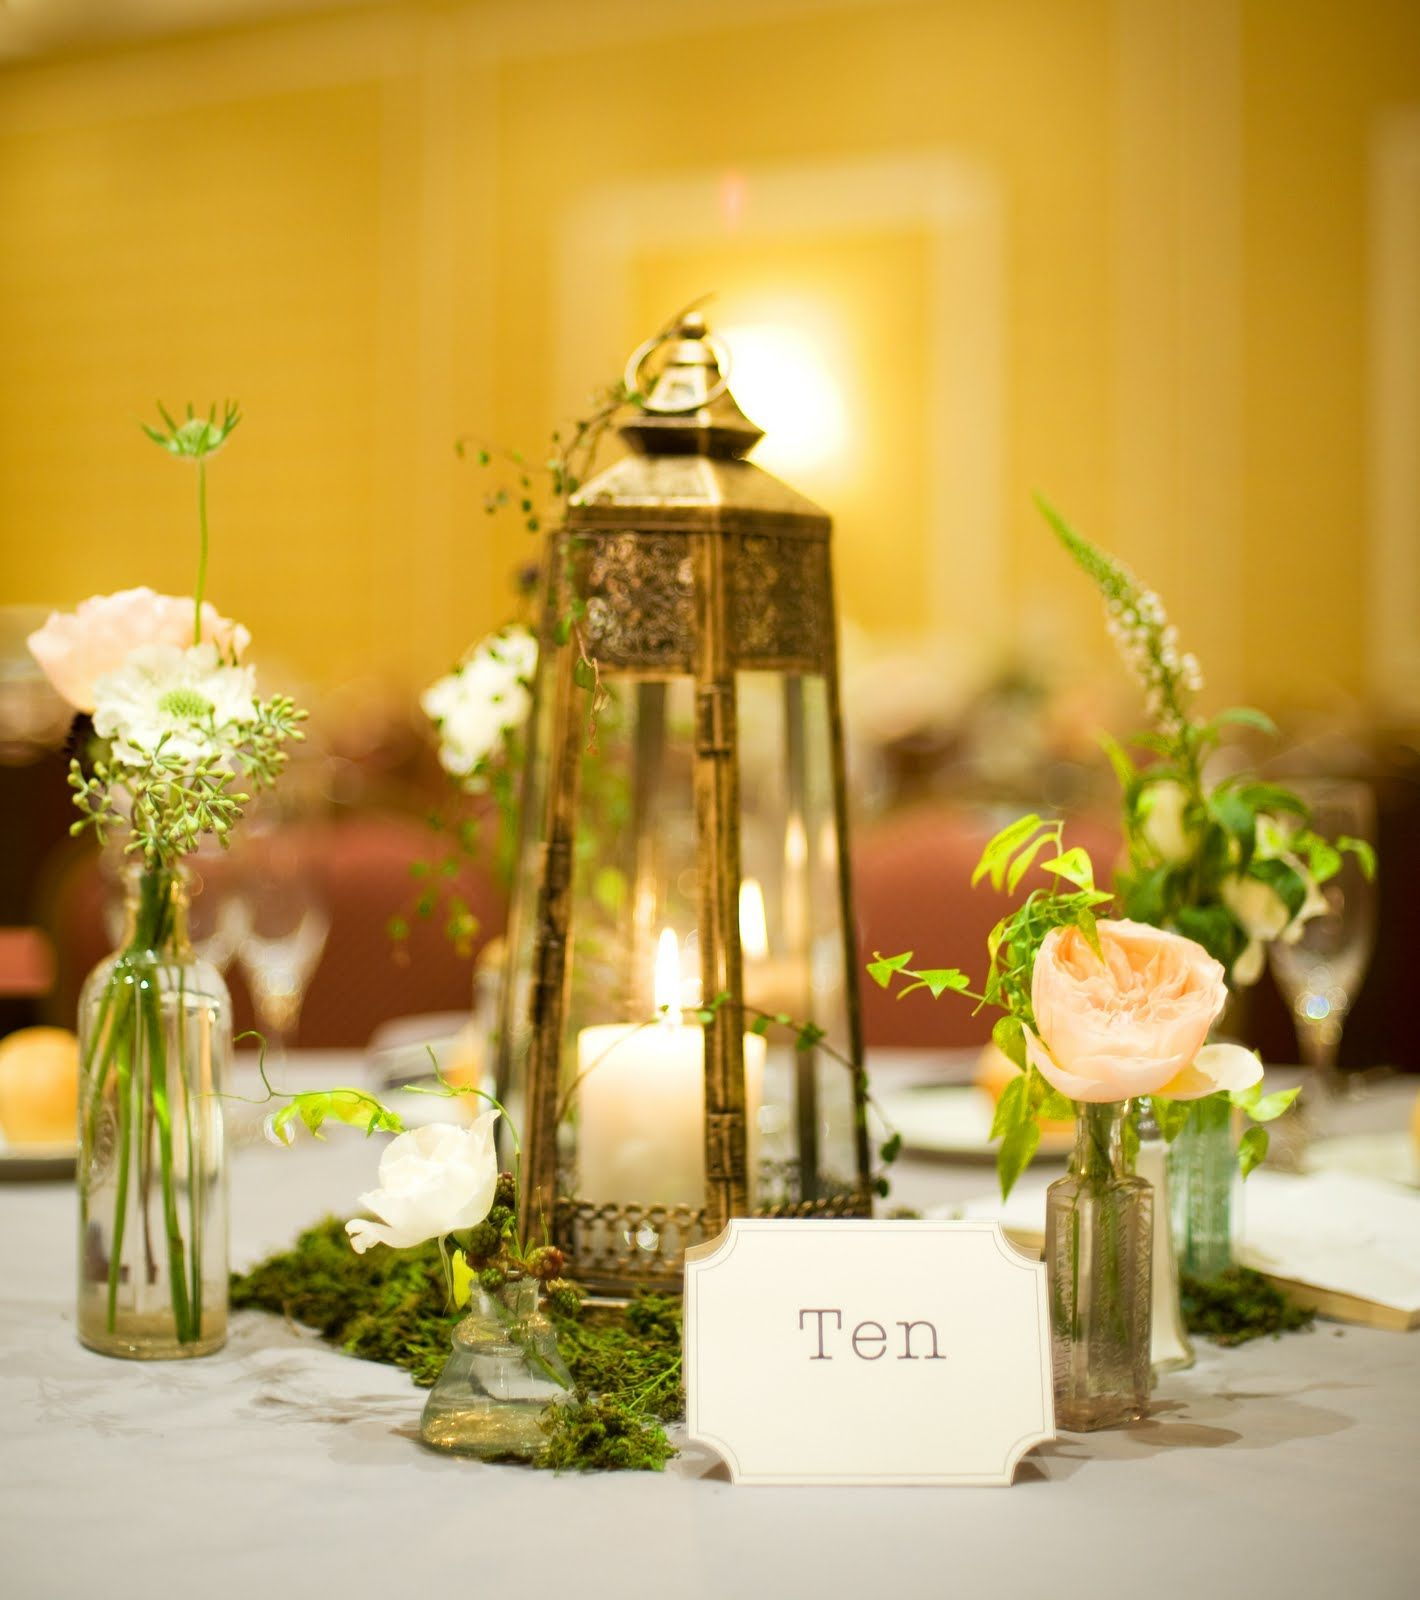 Small Country Wedding Ideas: Rustic Lanterns And Bud Vases.... We Sub The Bud Vases For